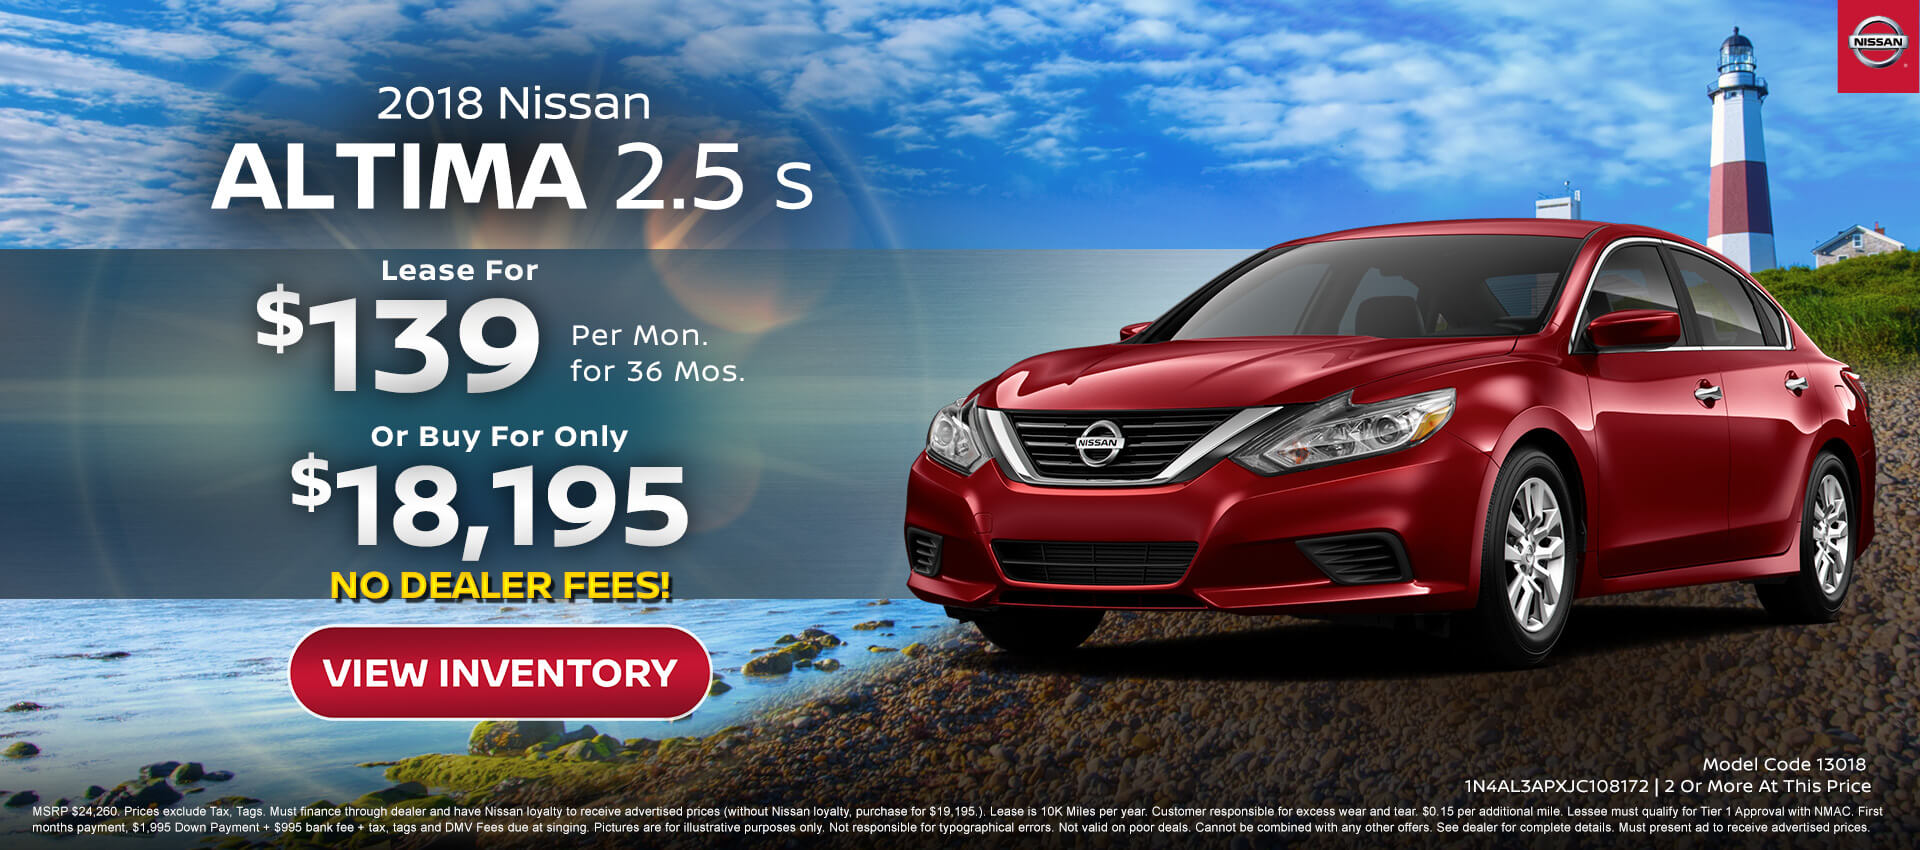 Nissan Altima $139 Lease, $17,995 Purcahse